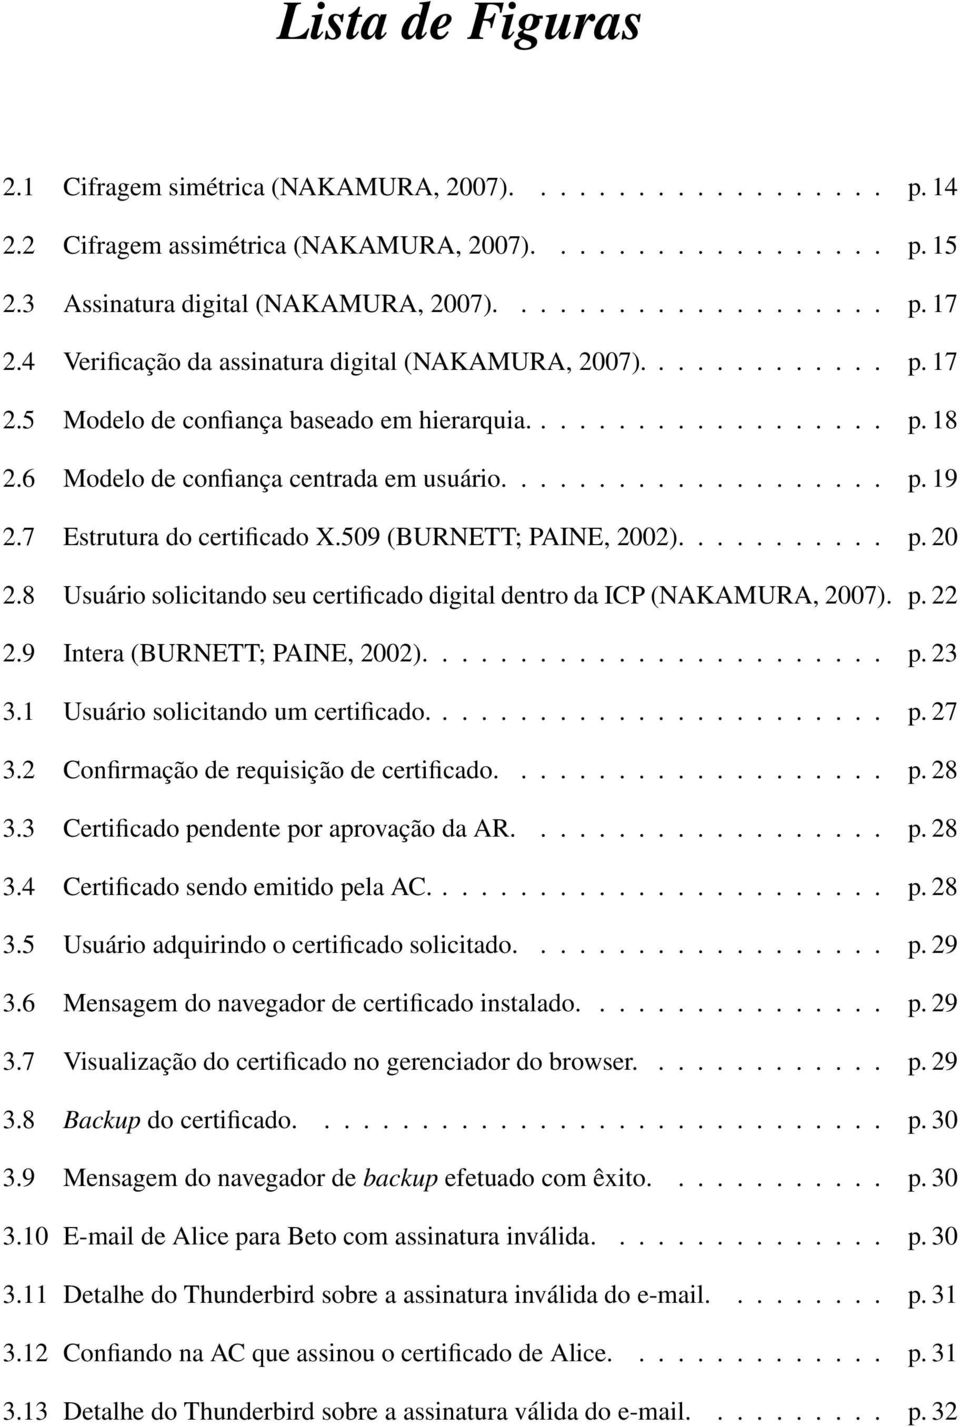 7 Estrutura do certificado X.509 (BURNETT; PAINE, 2002)........... p. 20 2.8 Usuário solicitando seu certificado digital dentro da ICP (NAKAMURA, 2007). p. 22 2.9 Intera (BURNETT; PAINE, 2002)........................ p. 23 3.